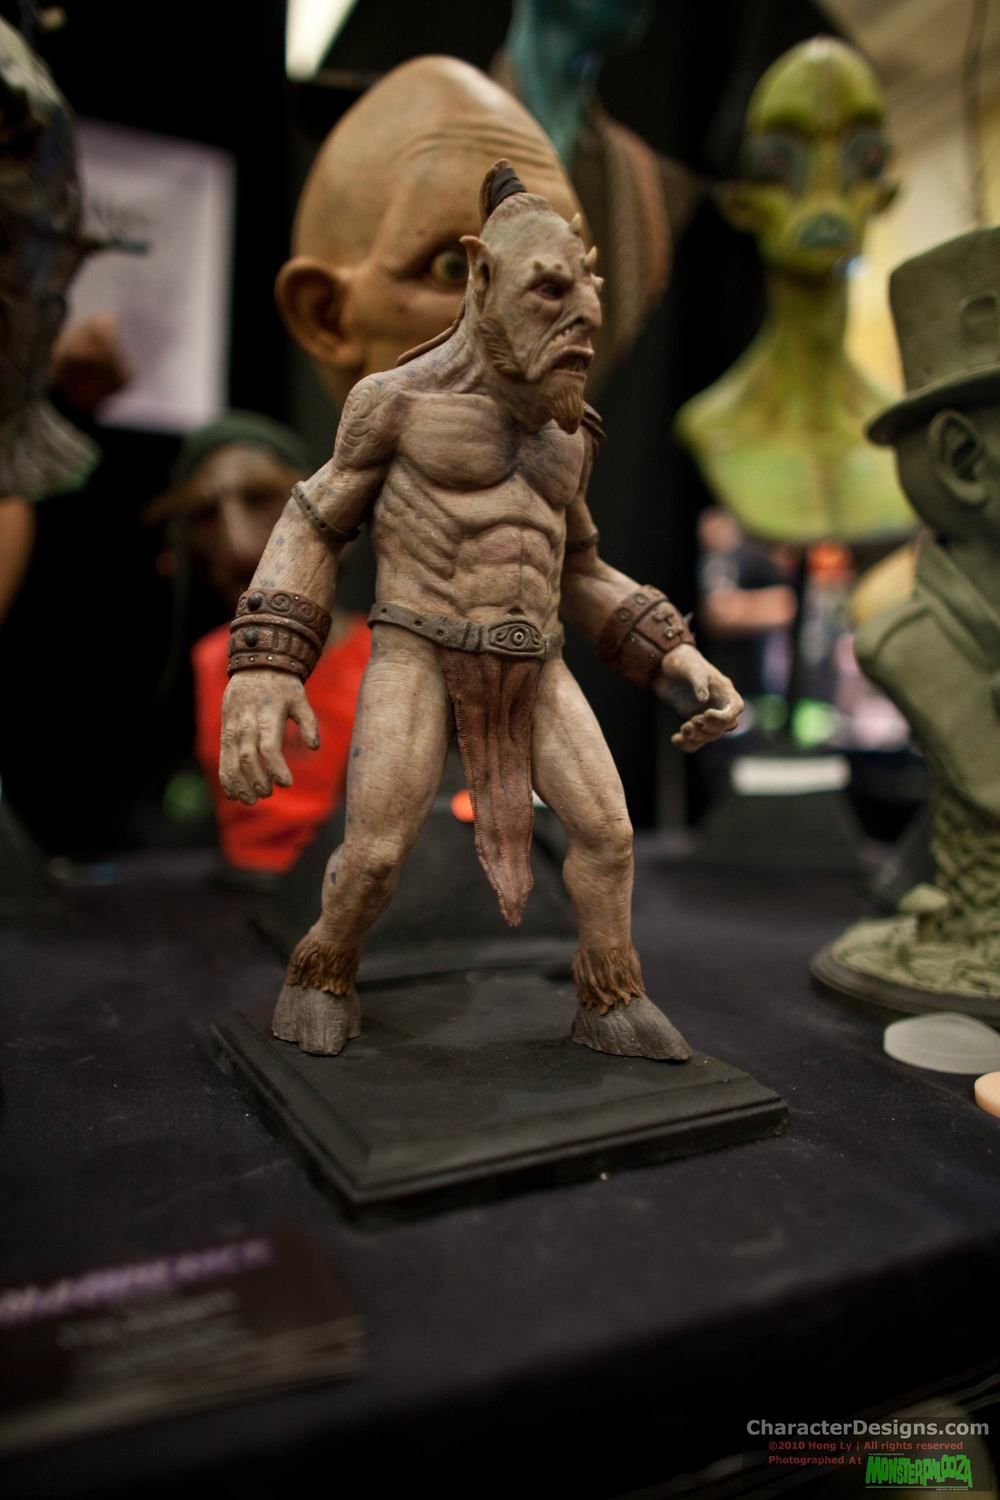 2010_Monsterpalooza_633.jpg